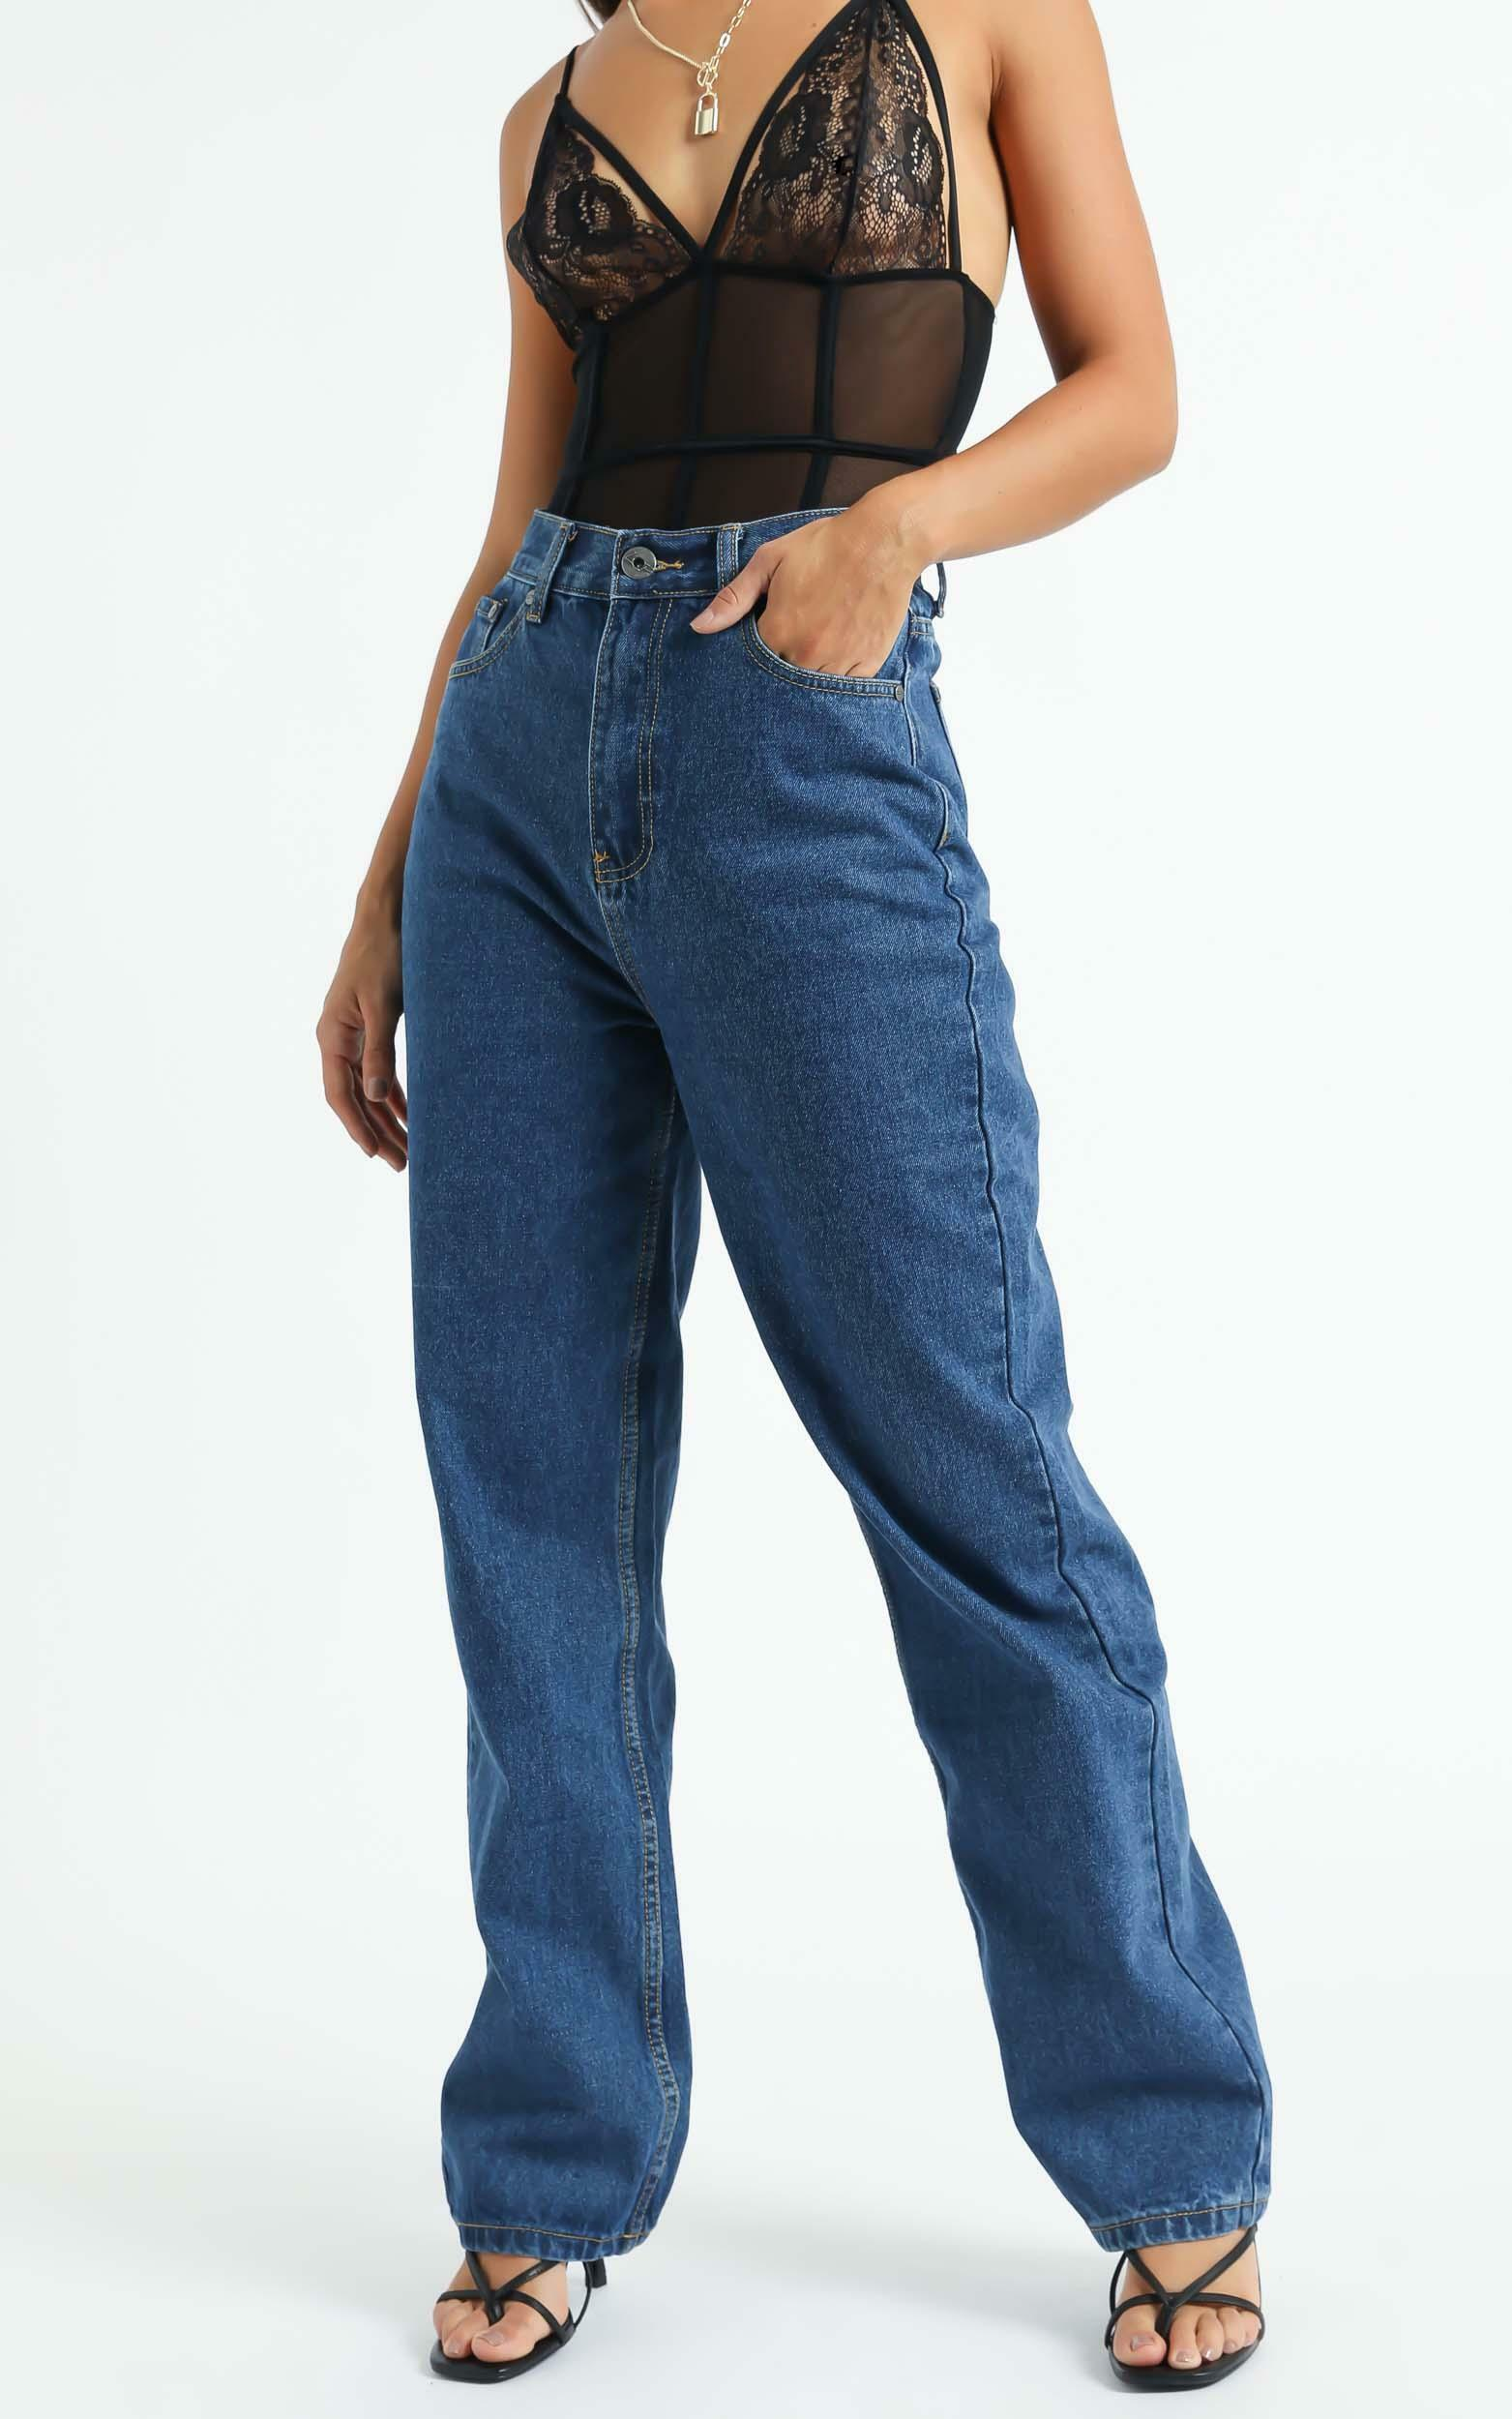 Arielle Straight Leg Jeans in Indigo - 6 (XS), BLU2, hi-res image number null